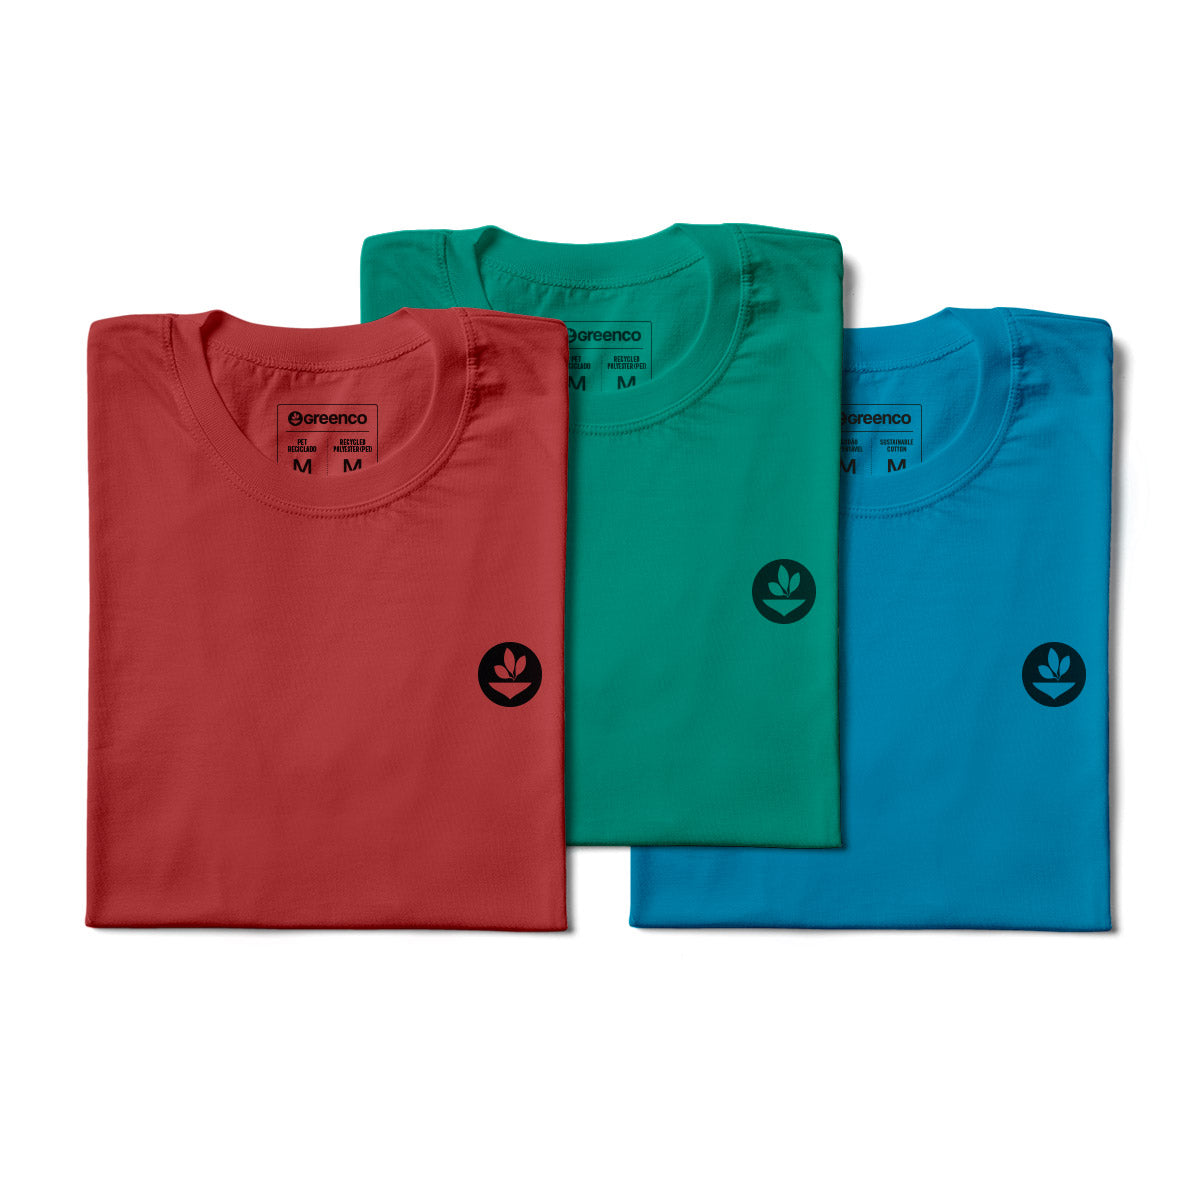 Basic Women's Kit Recycled Polyester (PET) - 3 t-shirts